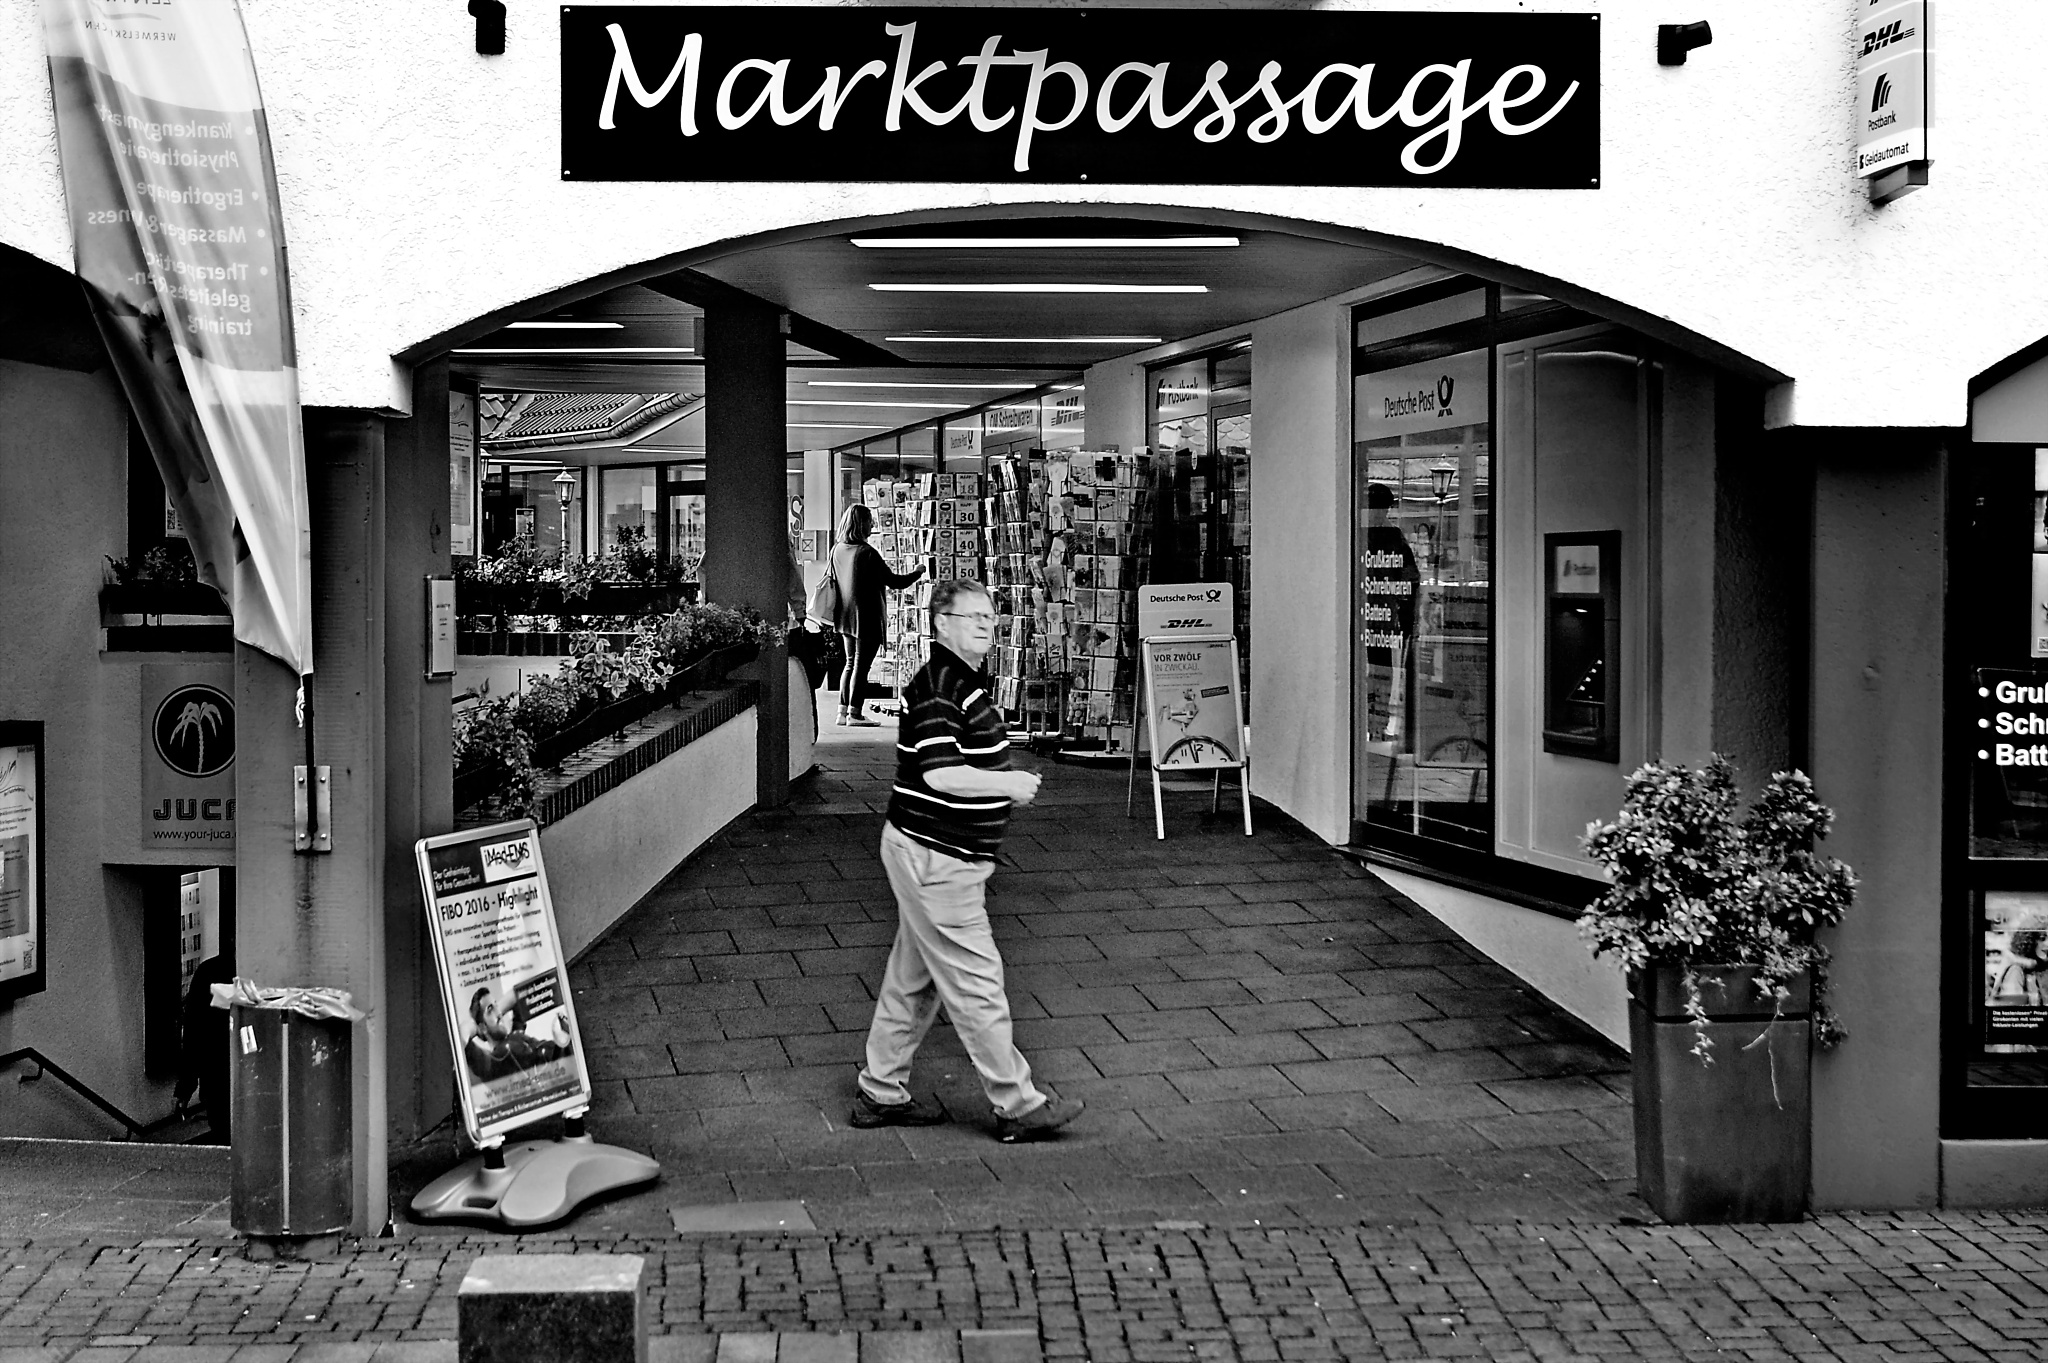 . . . ... some shopping in the market Passage by Underground Photography